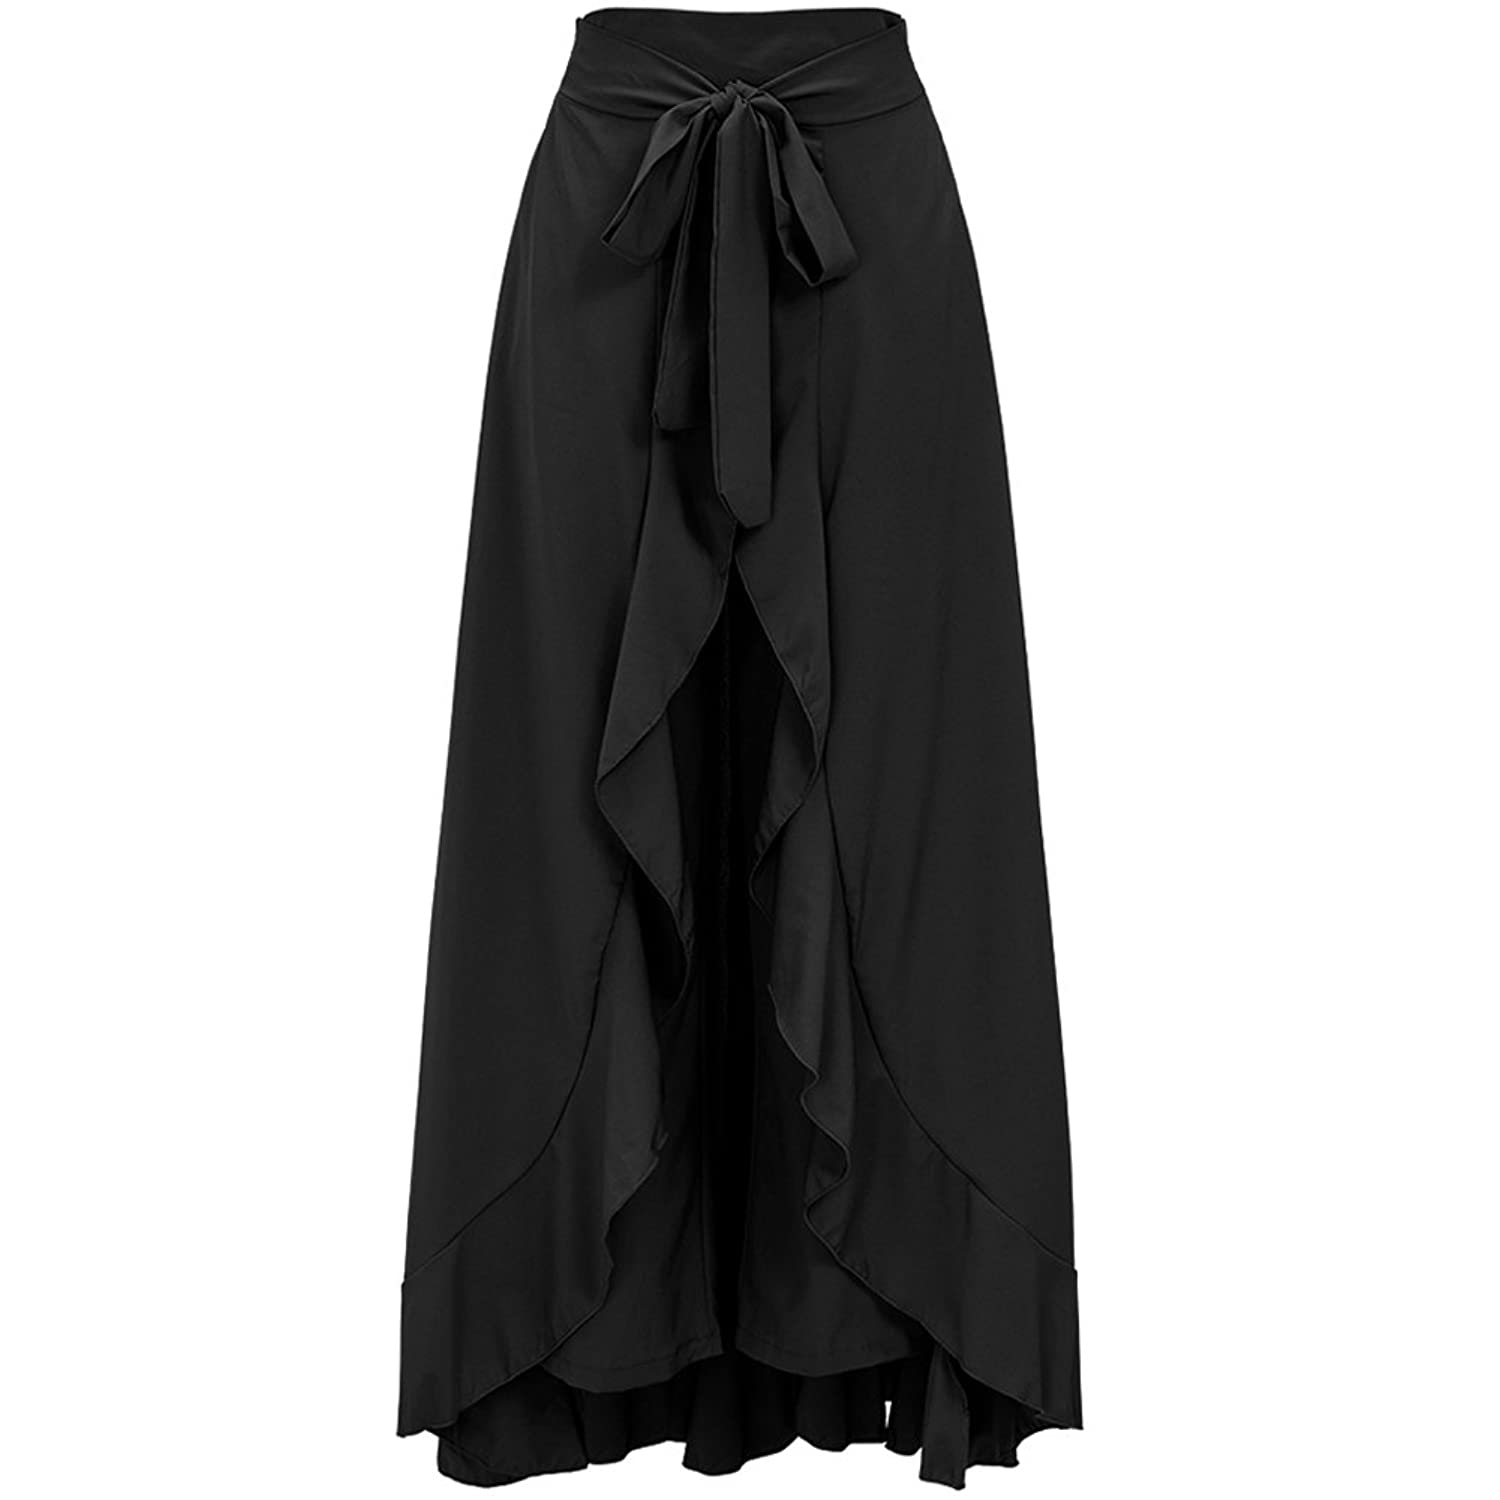 LaCouleur Women's Ruffles Detail Wrapped Casual Beach Work Party Flare Maxi Long Skirt With Belt